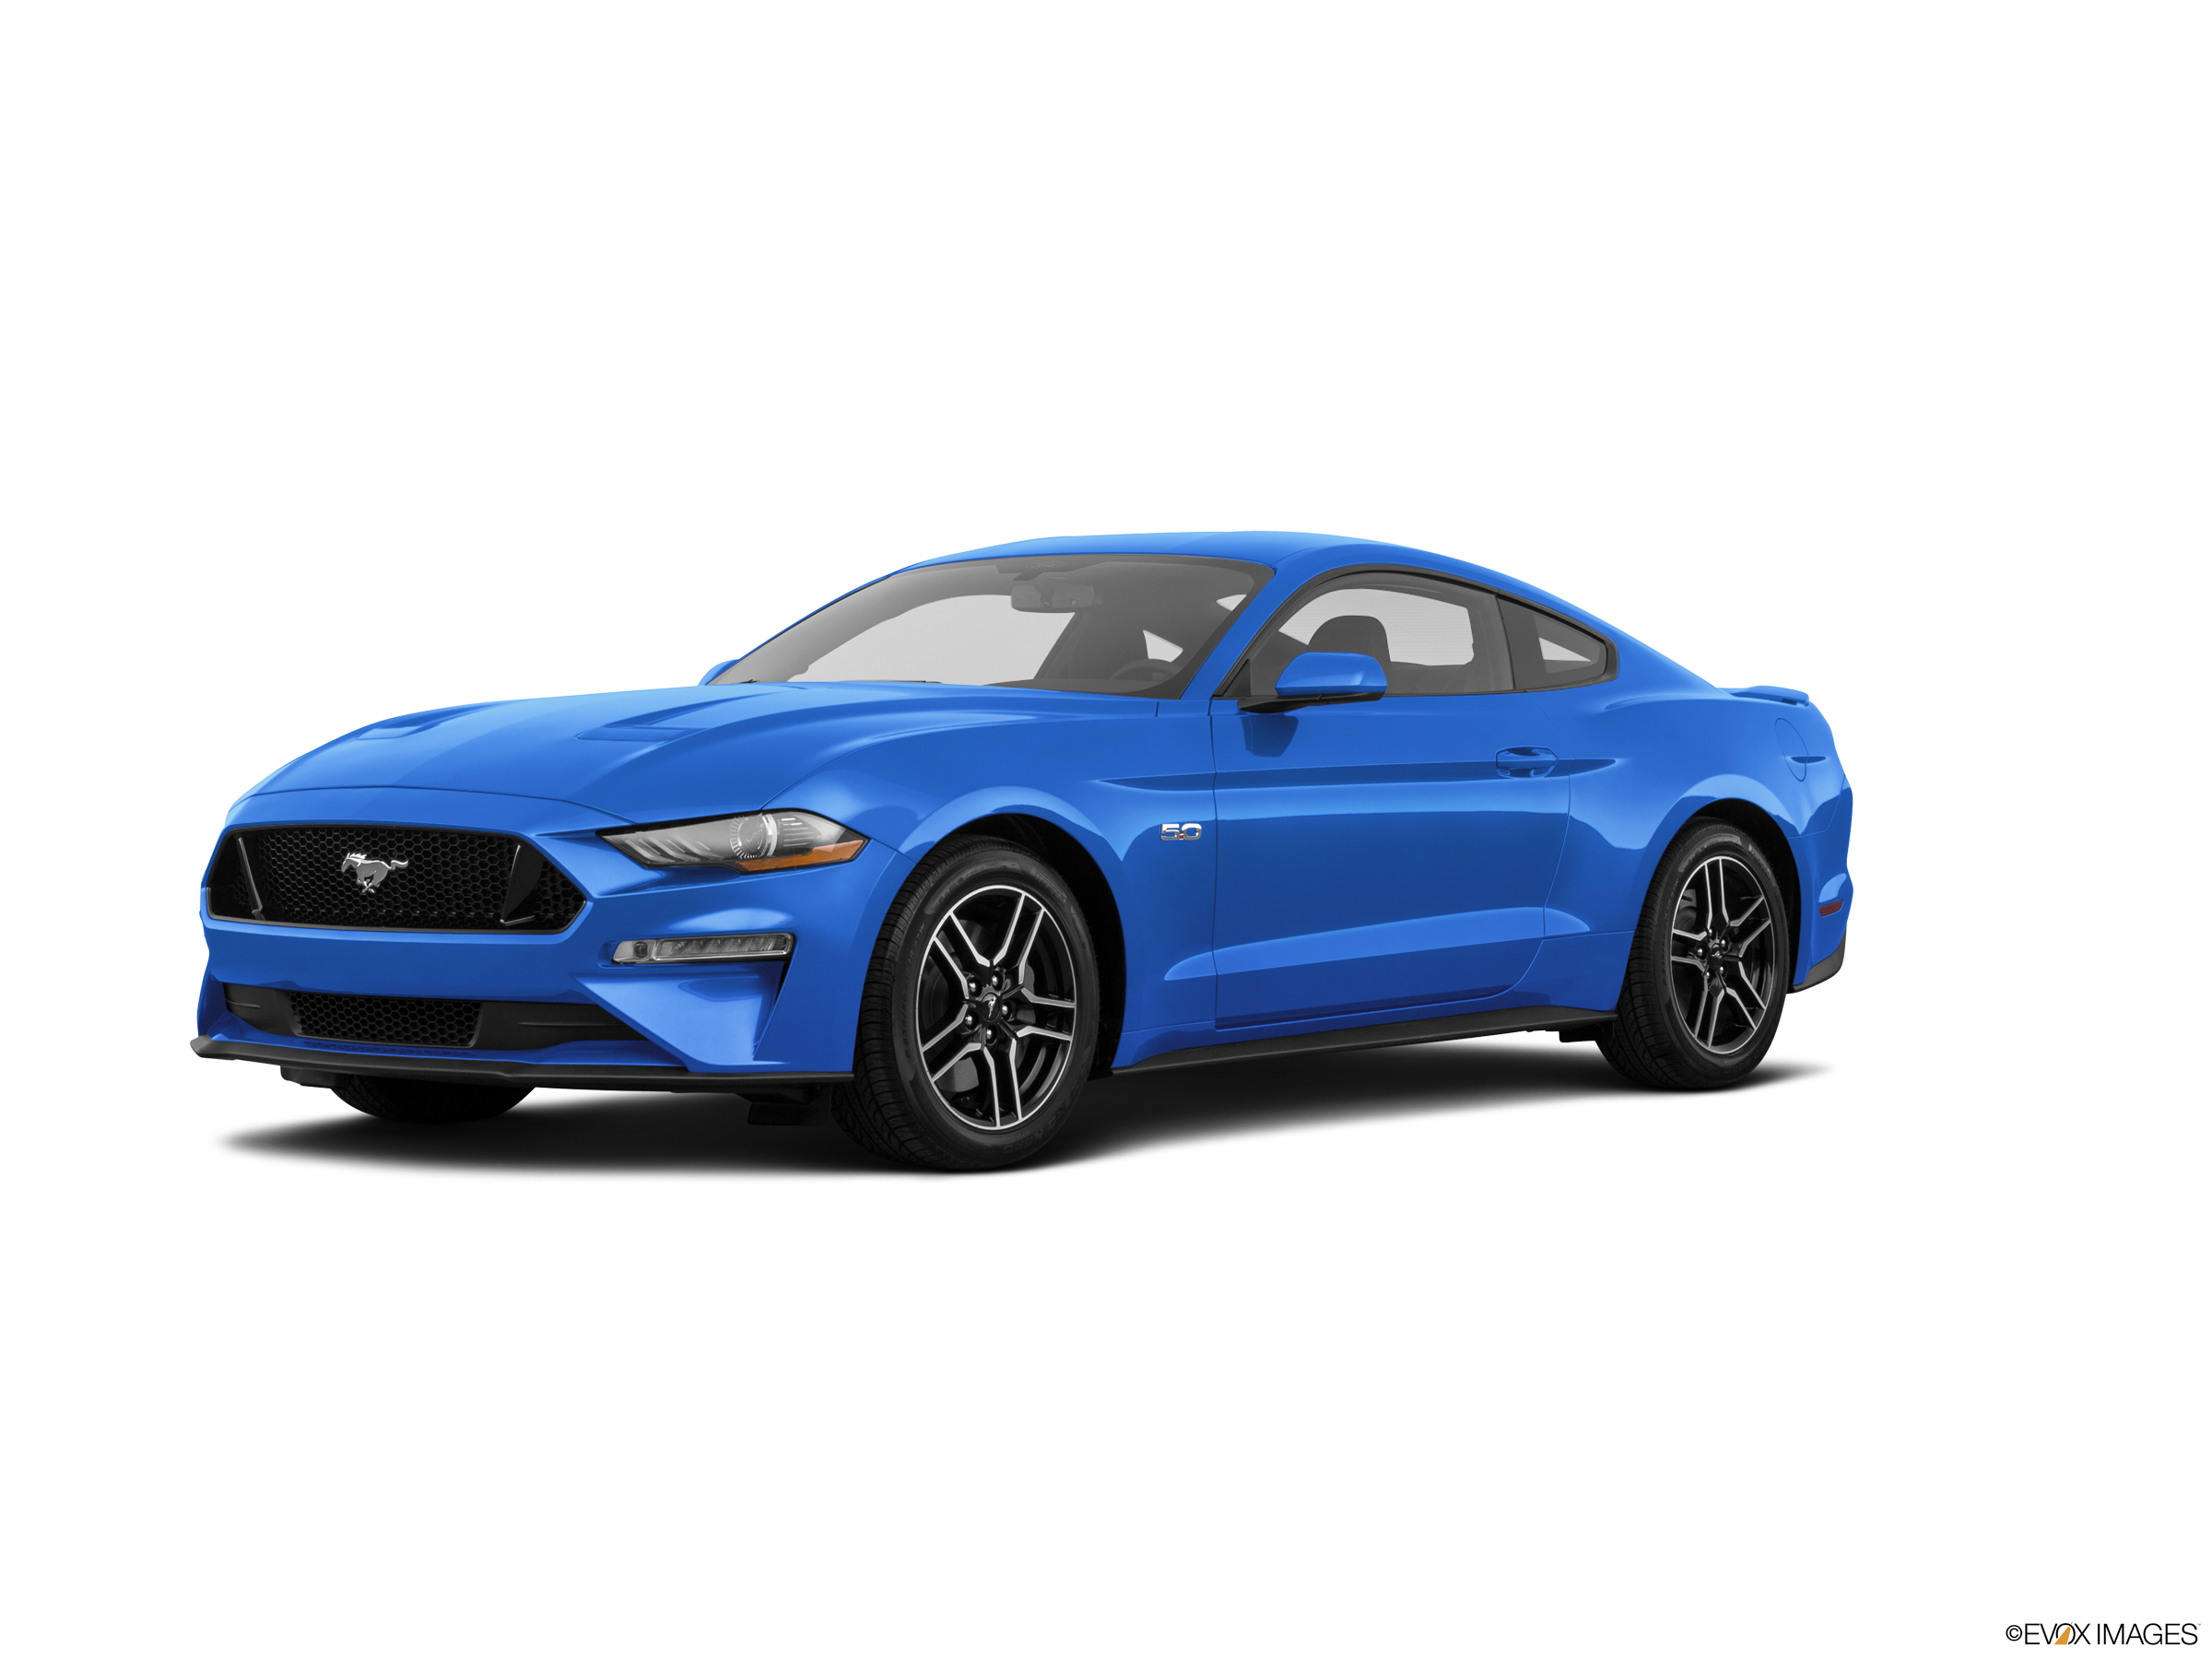 Ford Mustang Gt Convertible 2020 Cost